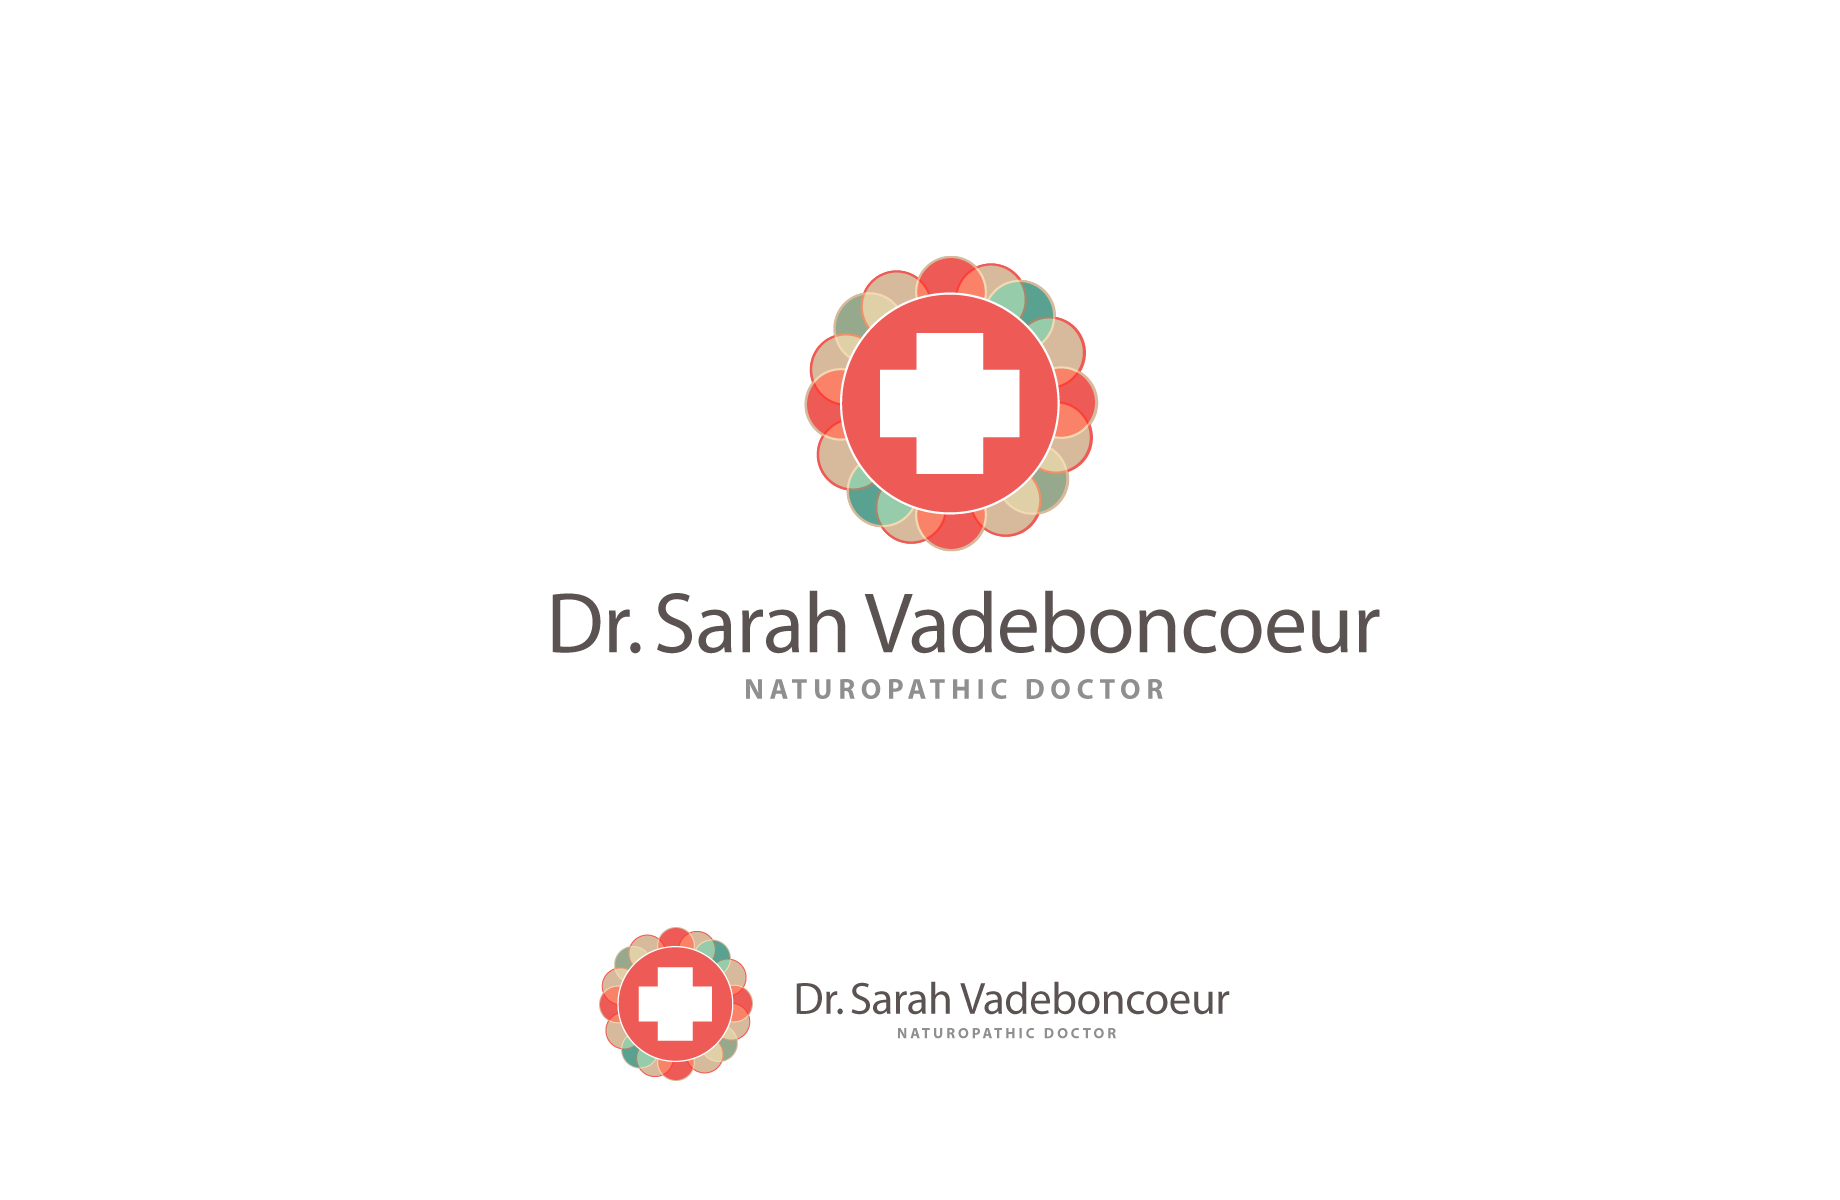 Logo Design by Jan Chua - Entry No. 92 in the Logo Design Contest New Logo Design for Dr. Sarah Vadeboncoeur, Naturopathic Doctor.